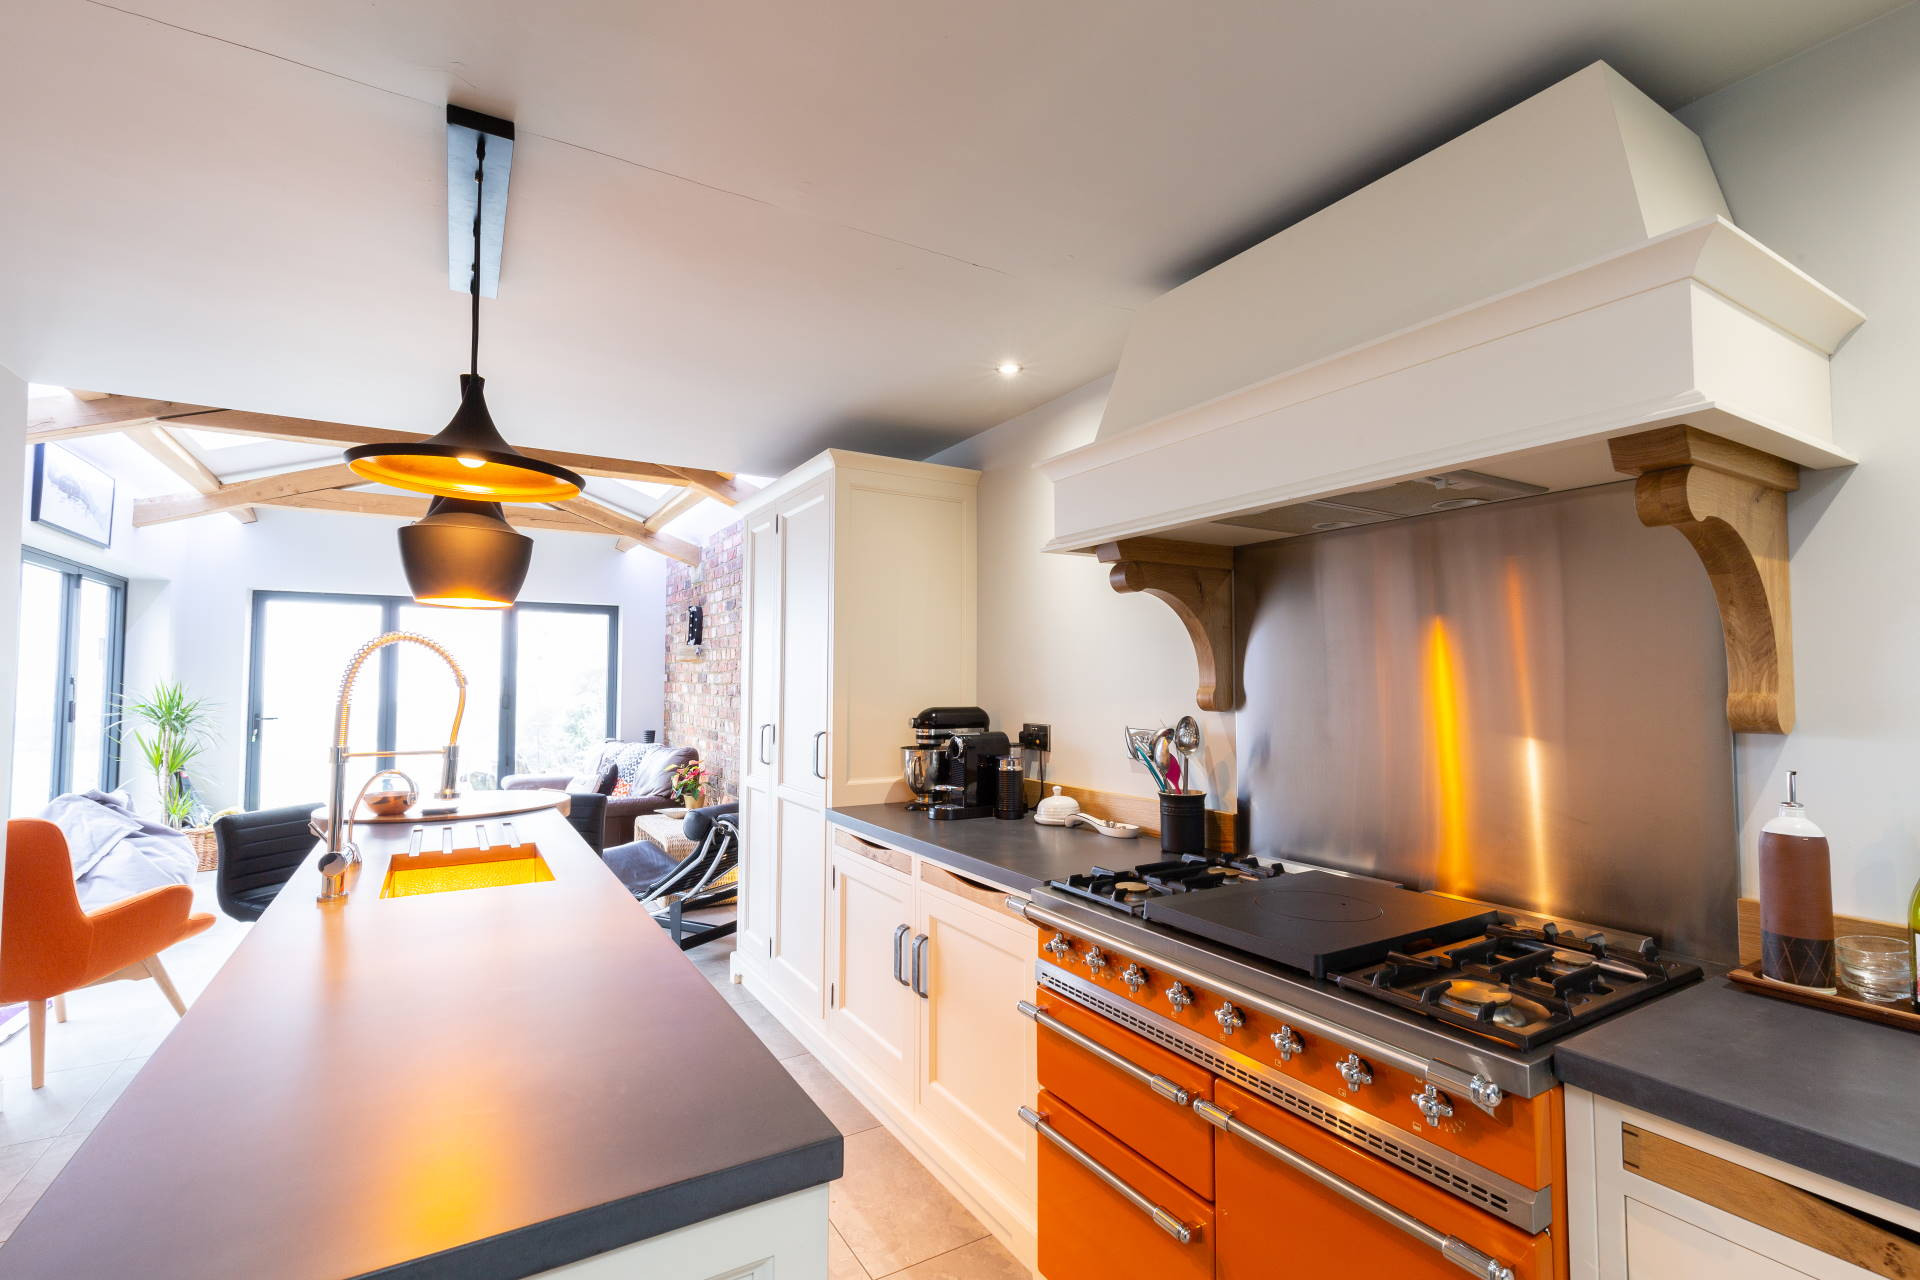 Bespoke Kitchens & Furniture Makers in Lincoln UK